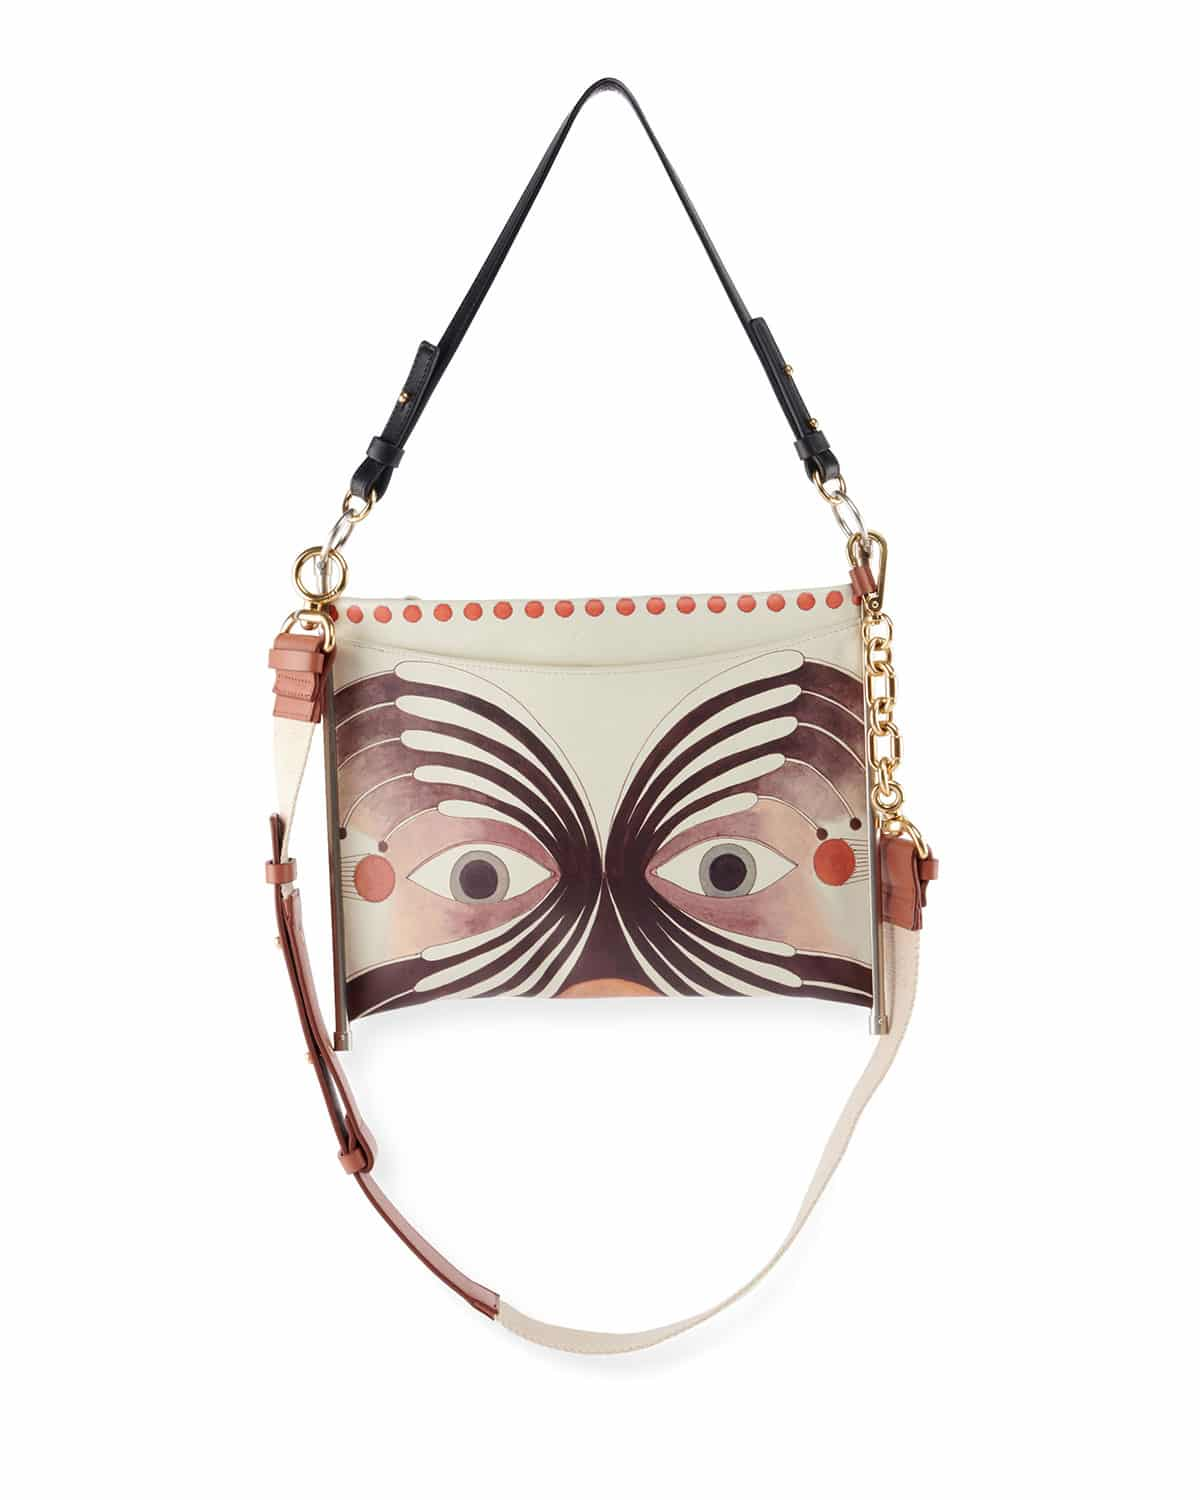 Chloe Spring Summer 2018 Bag Collection With The New Roy